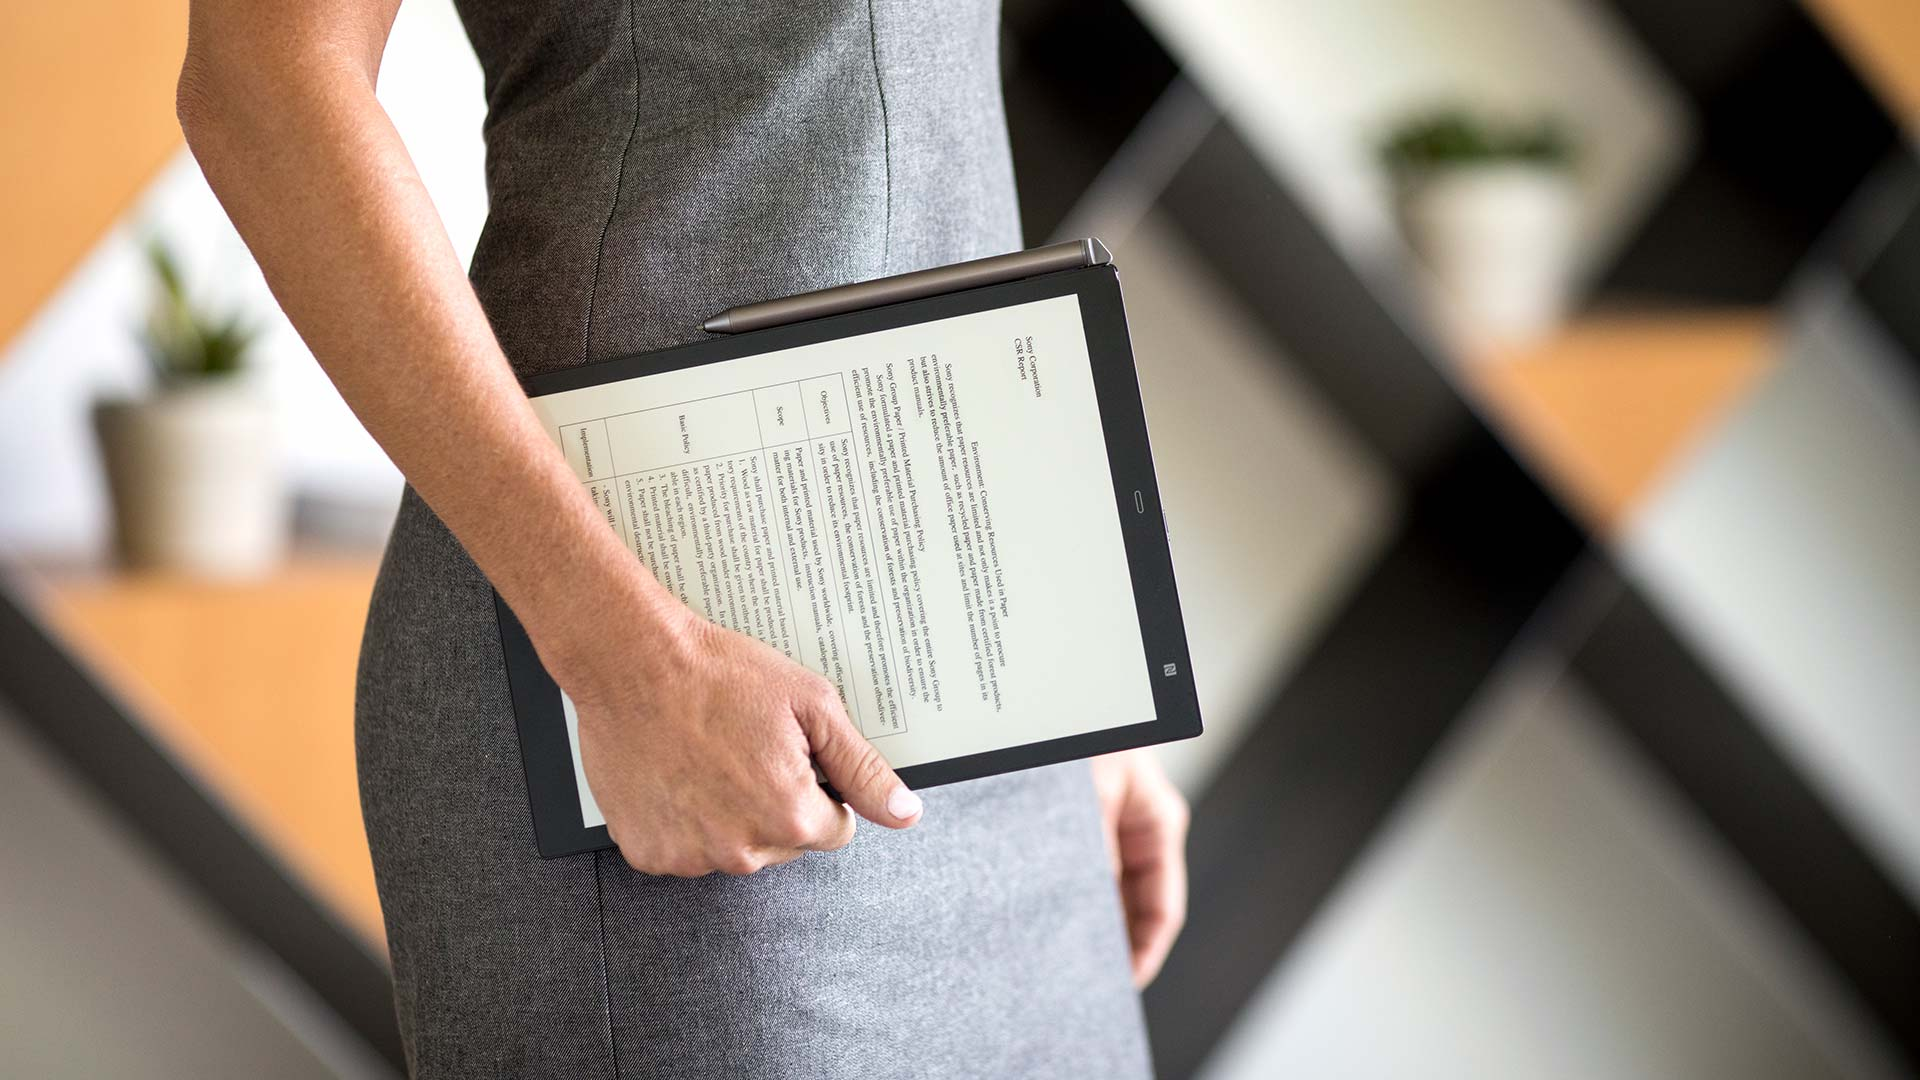 sony-digital-paper-photoshoot-woman-carrying-tablet.jpg